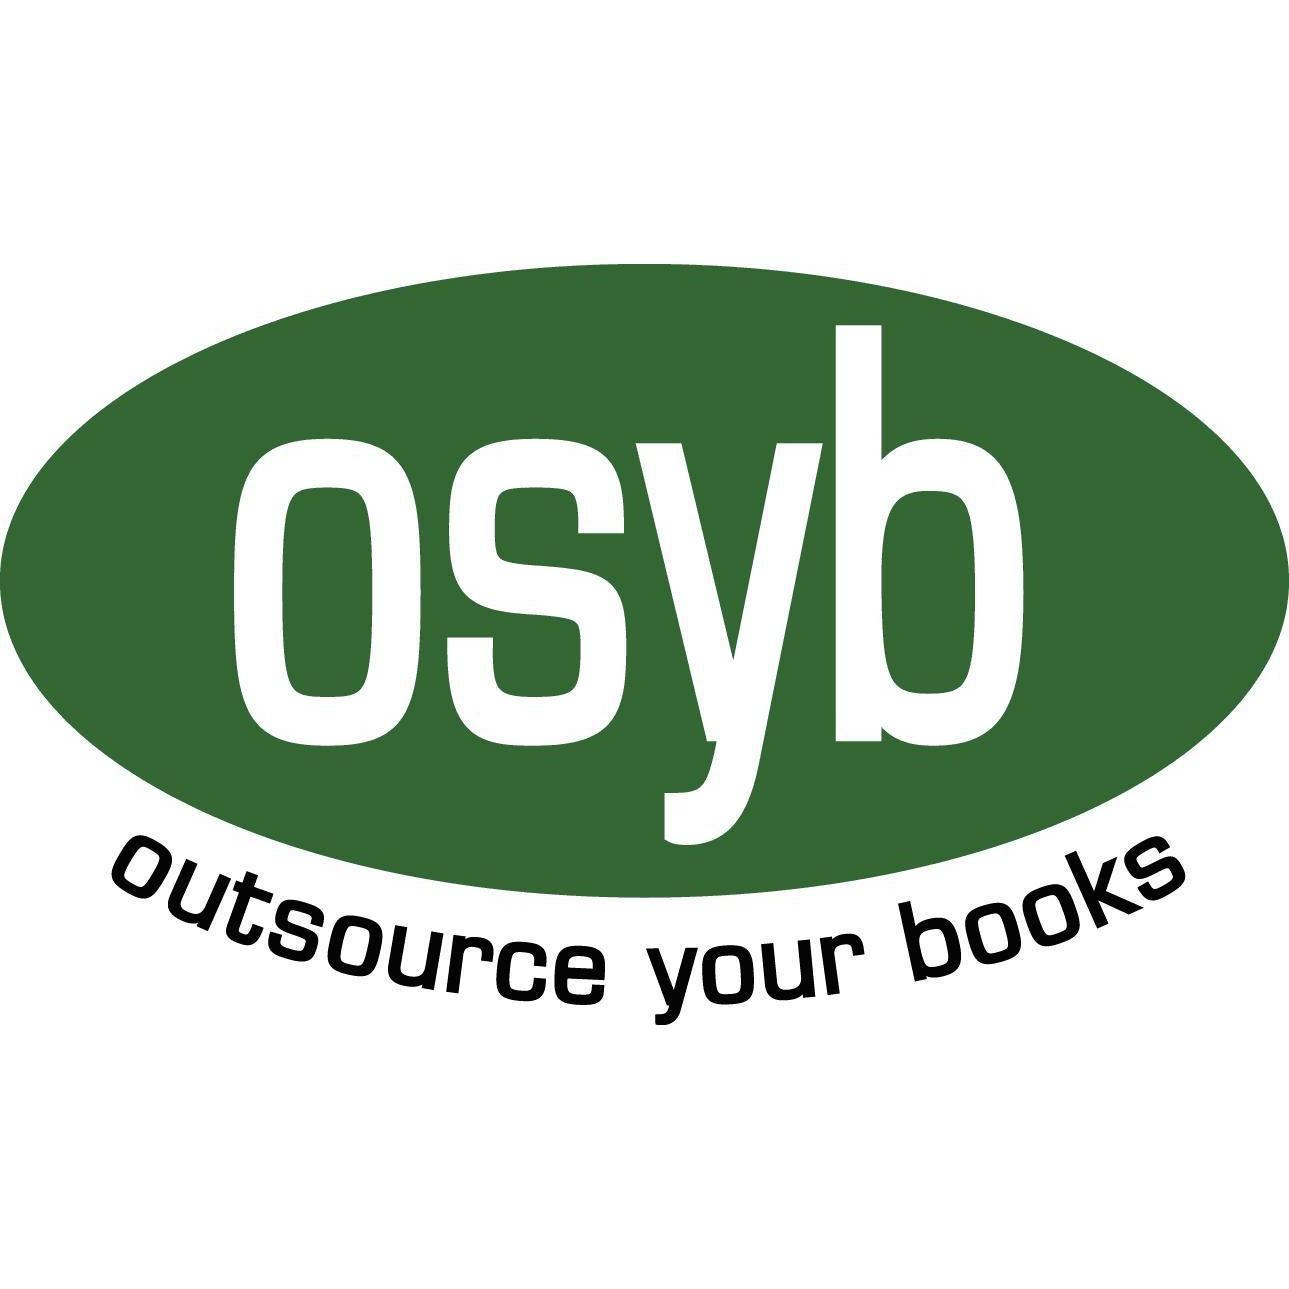 OutSource Your Books, LLC image 0